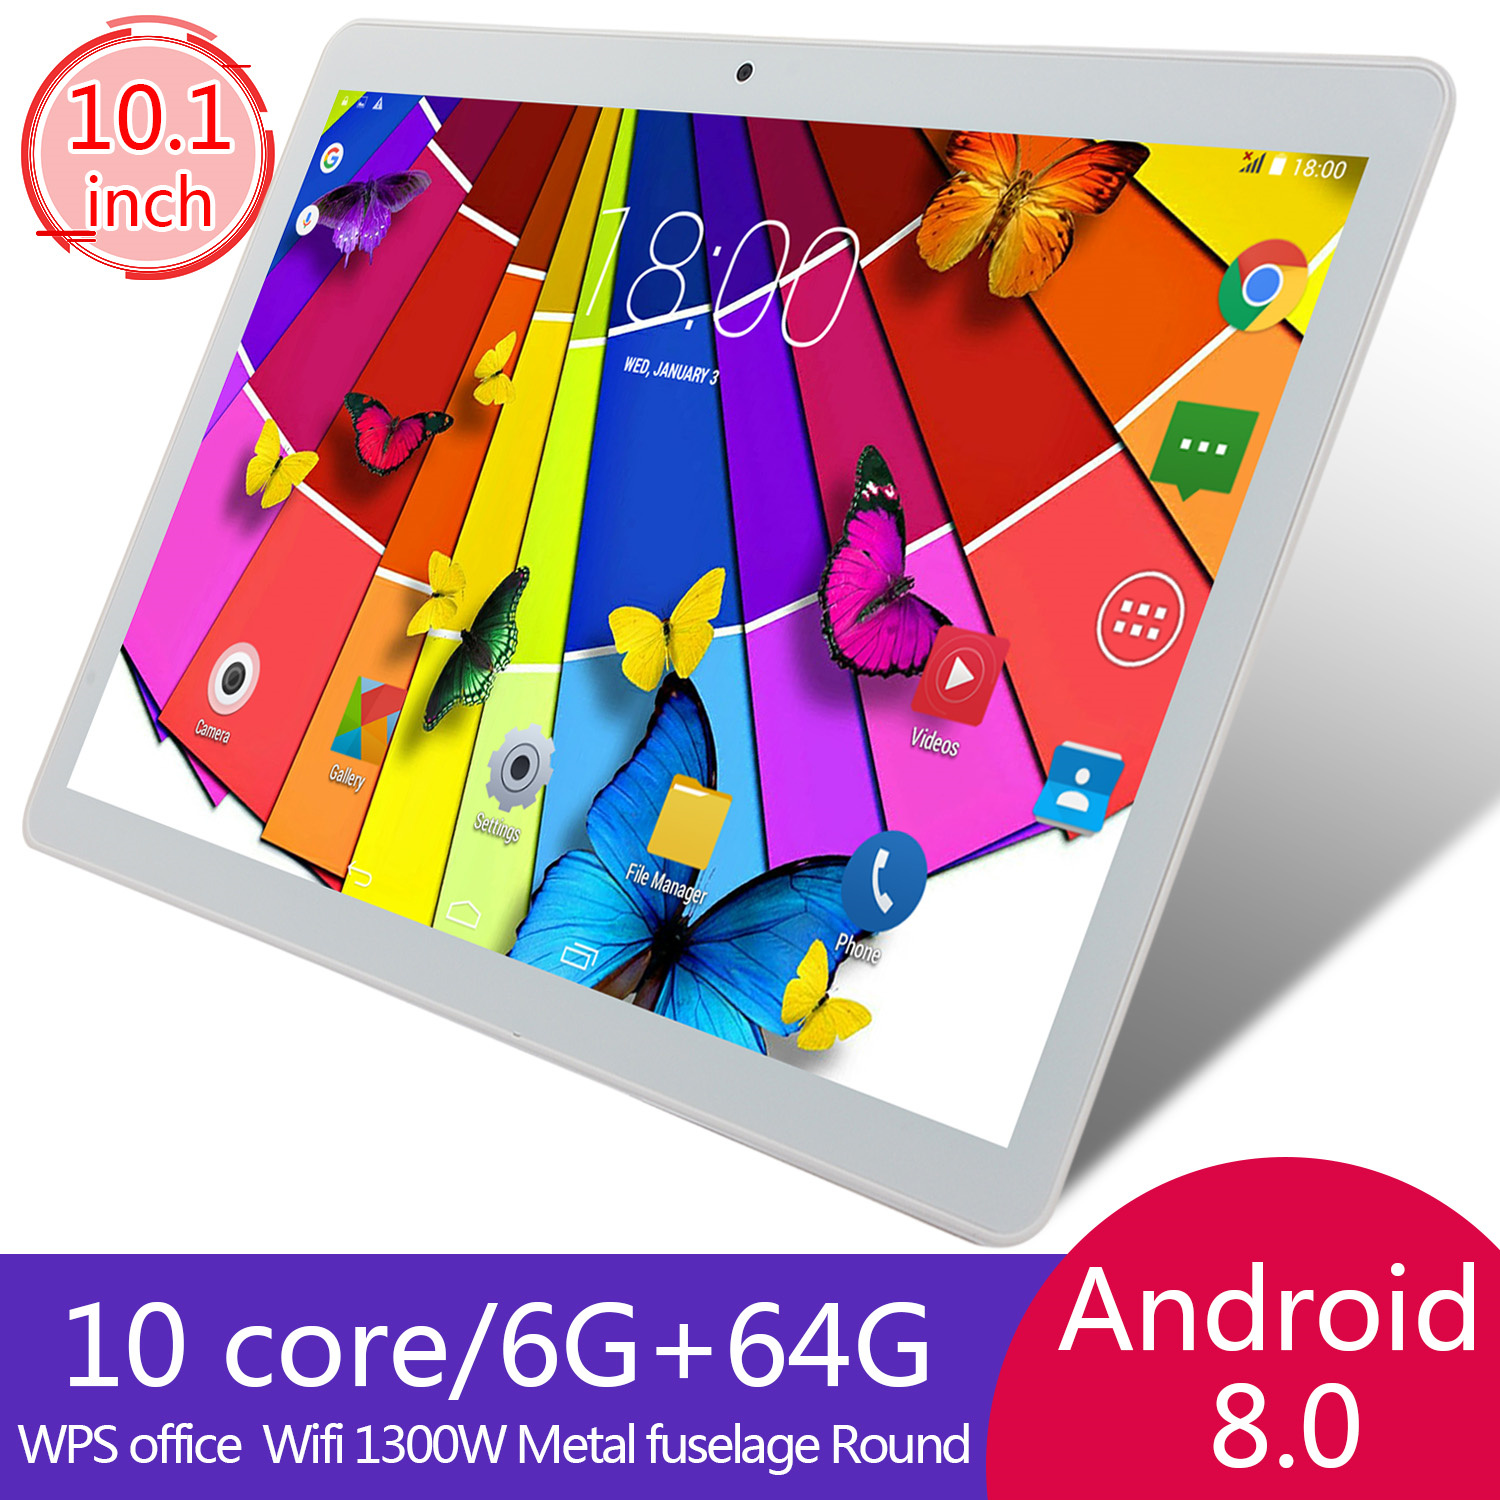 KIVBWY Tablets Android 4G Phone Call Octa Core 6 GB+64 GB Tablet 10.1 Pc With Touch Keyboard Dual SIM Card WiFi Bluetooth